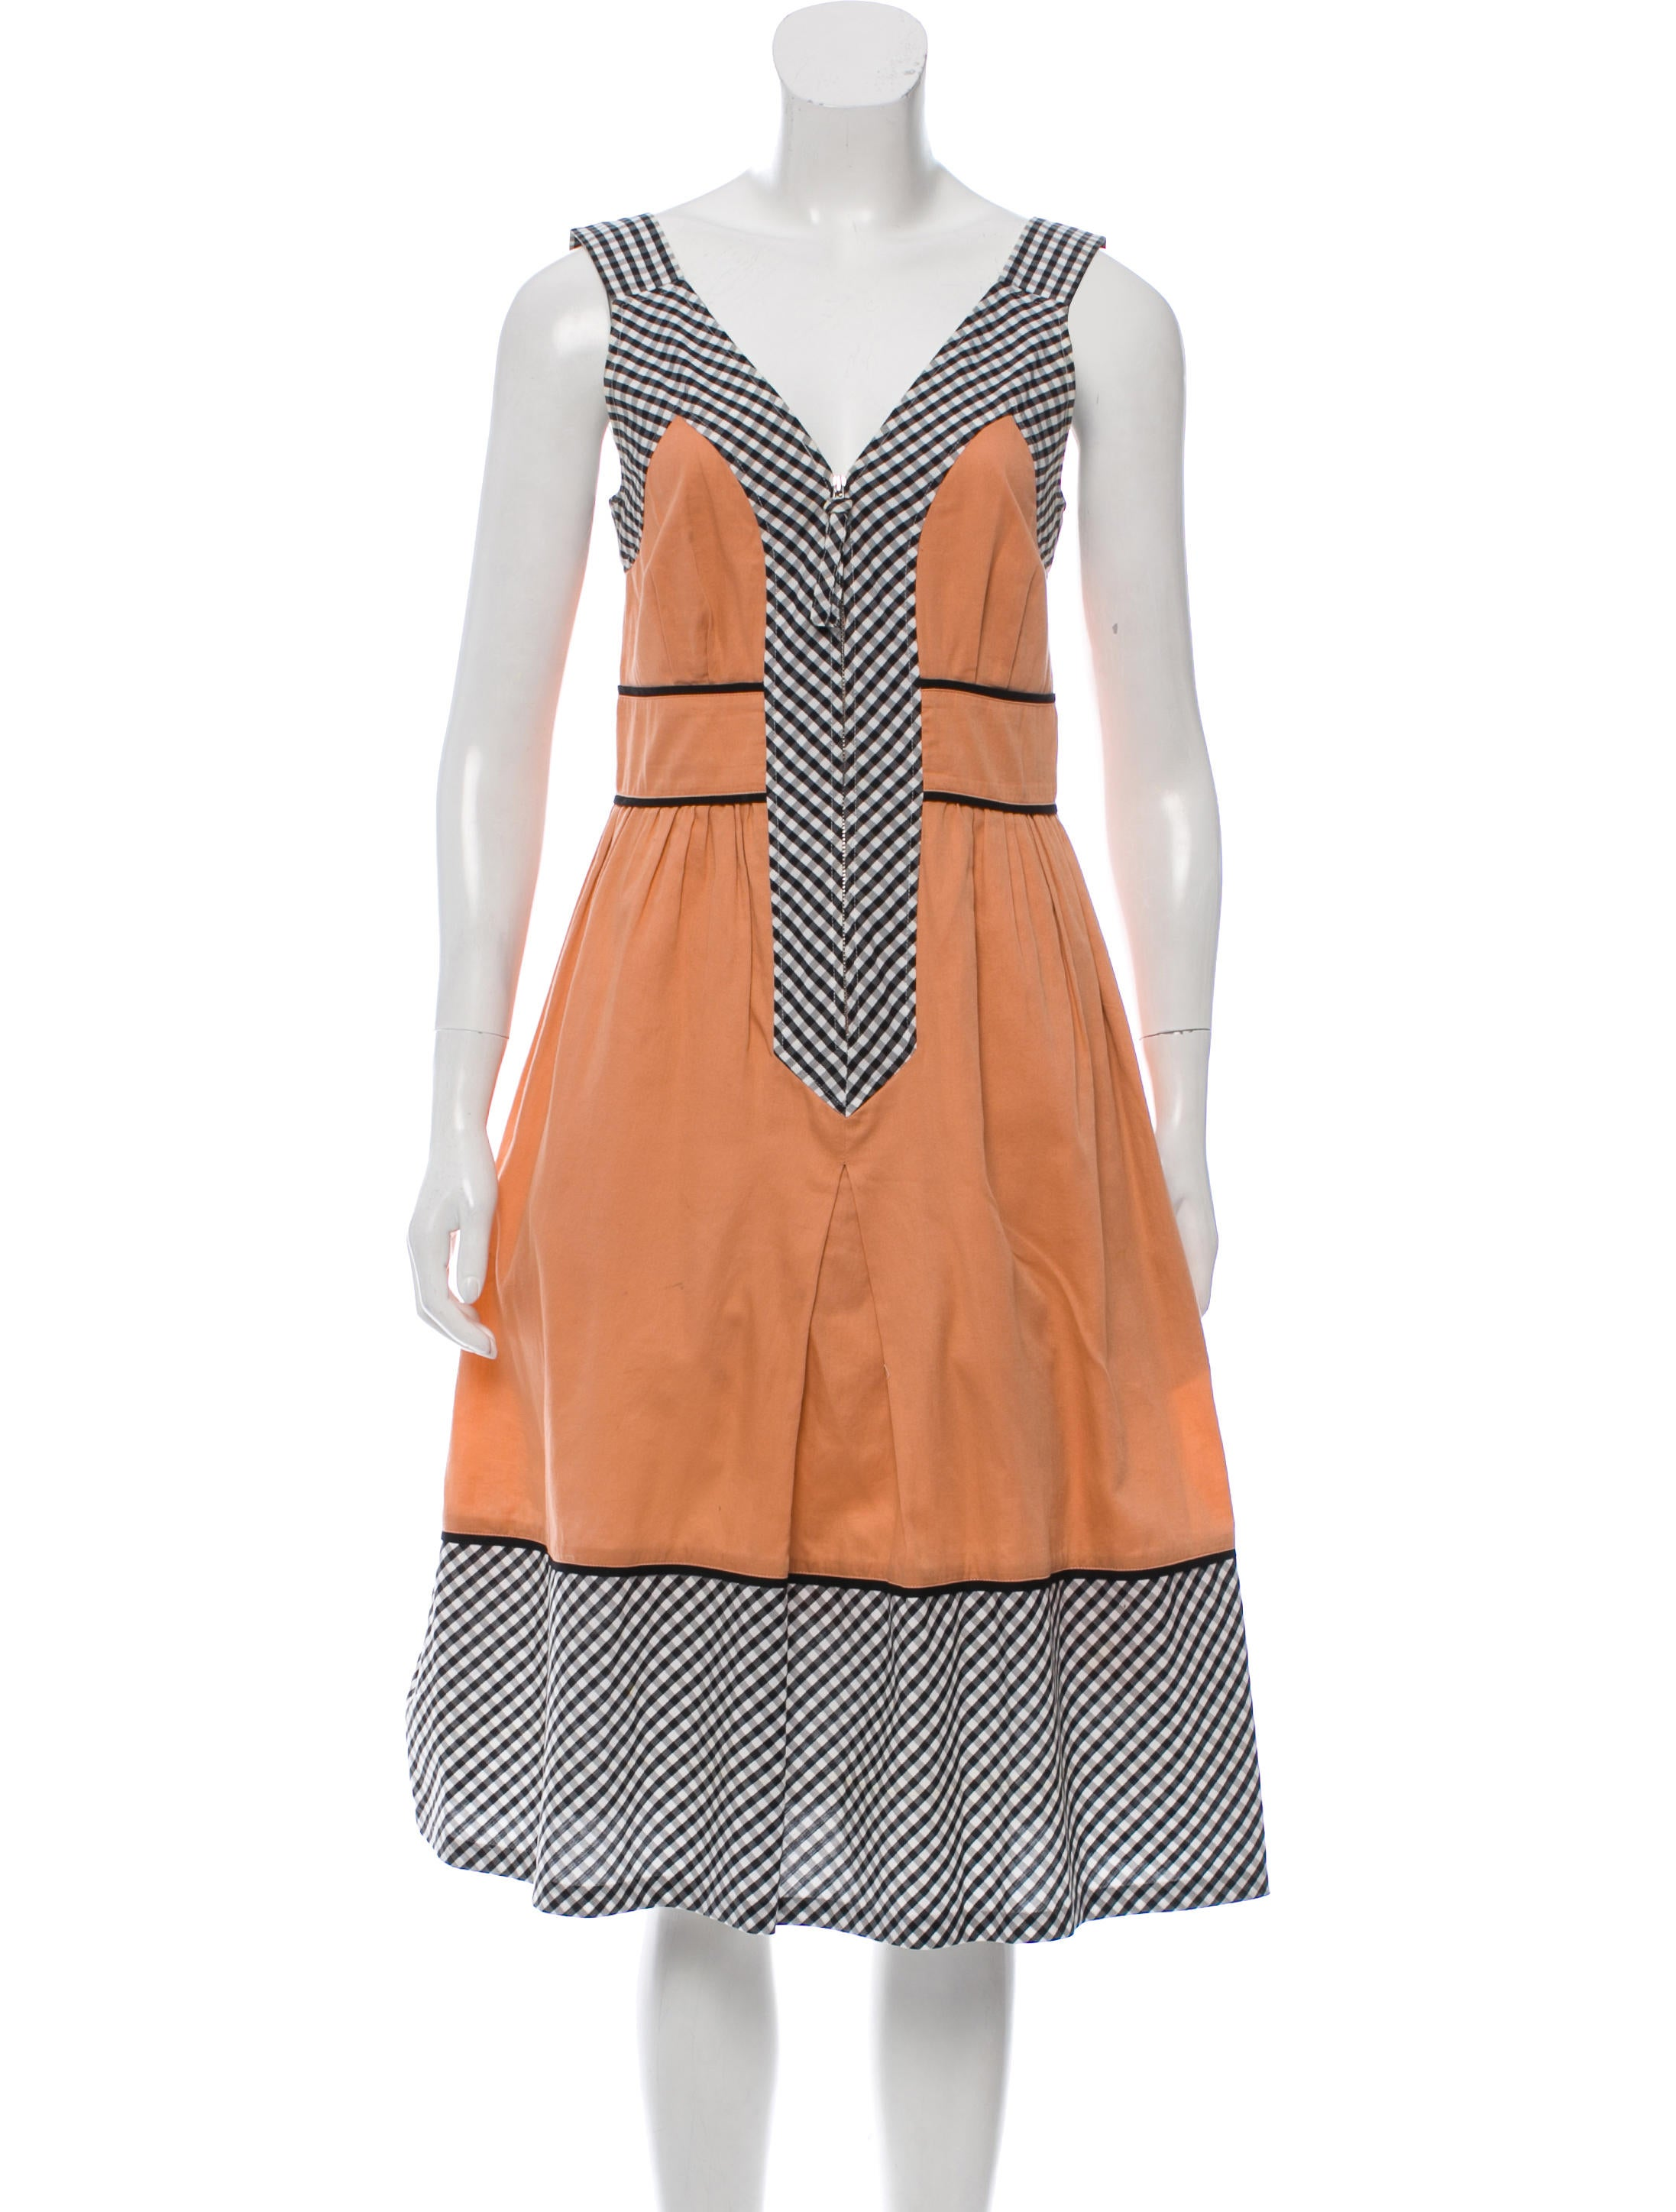 044a716821c Cacharel Gingham-Accented Sleeveless Dress - Clothing - CAC22782 ...